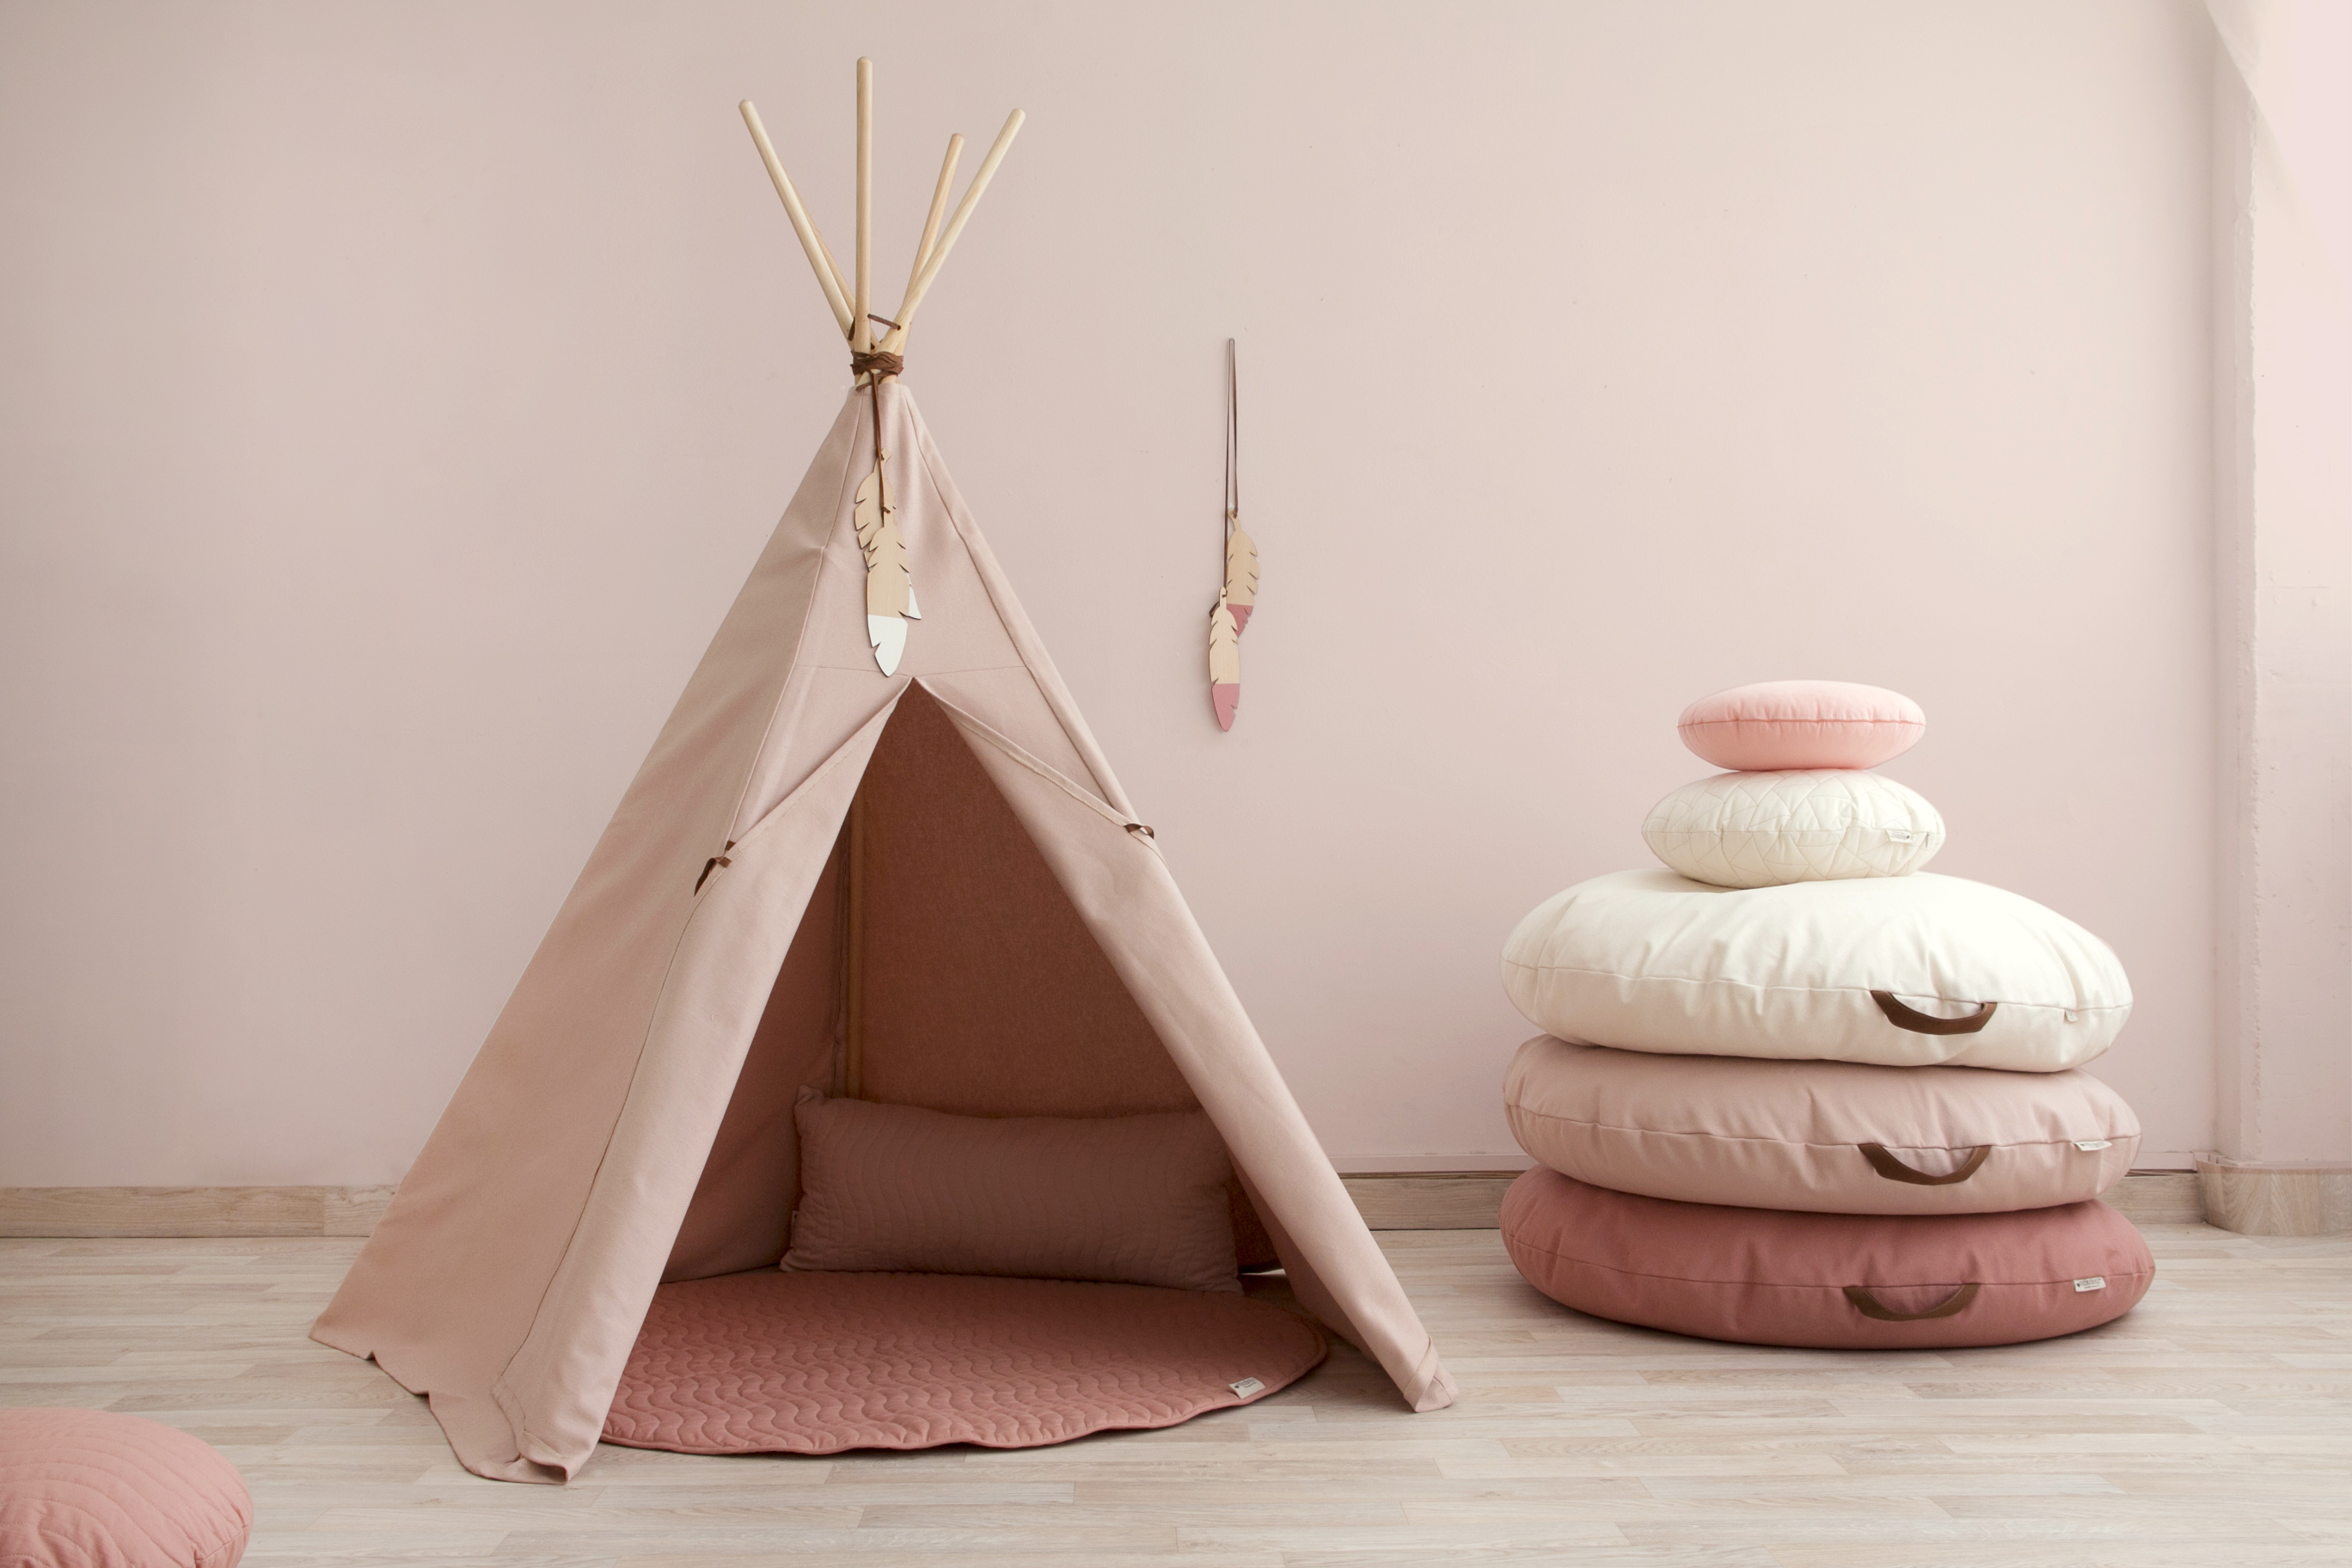 teepee-nevada-bloom-pink-sahara-beanbags-nobodinoz